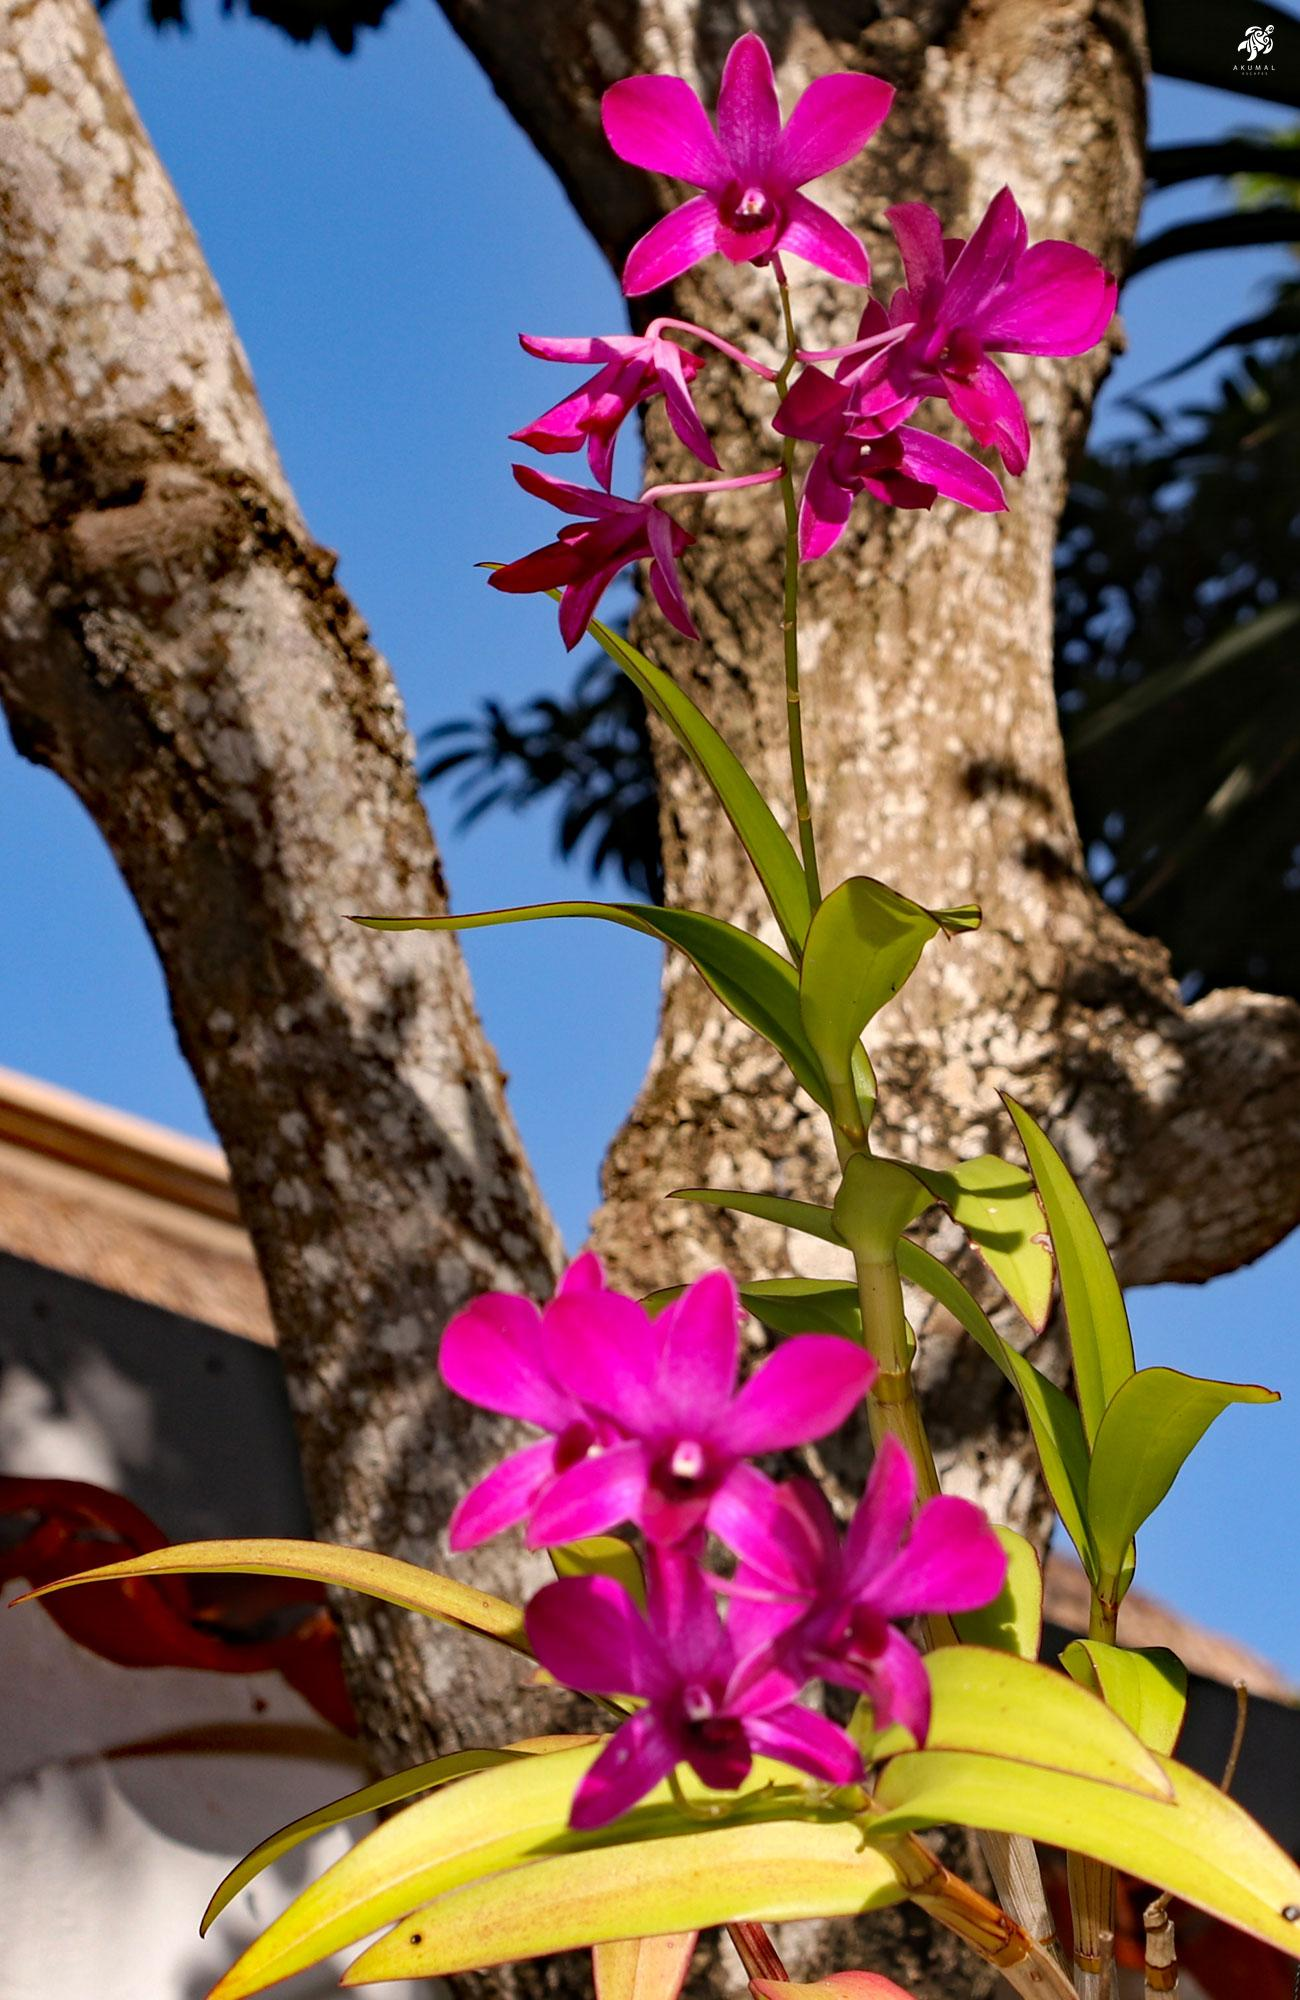 An orchid blooming in La Sirena gardens